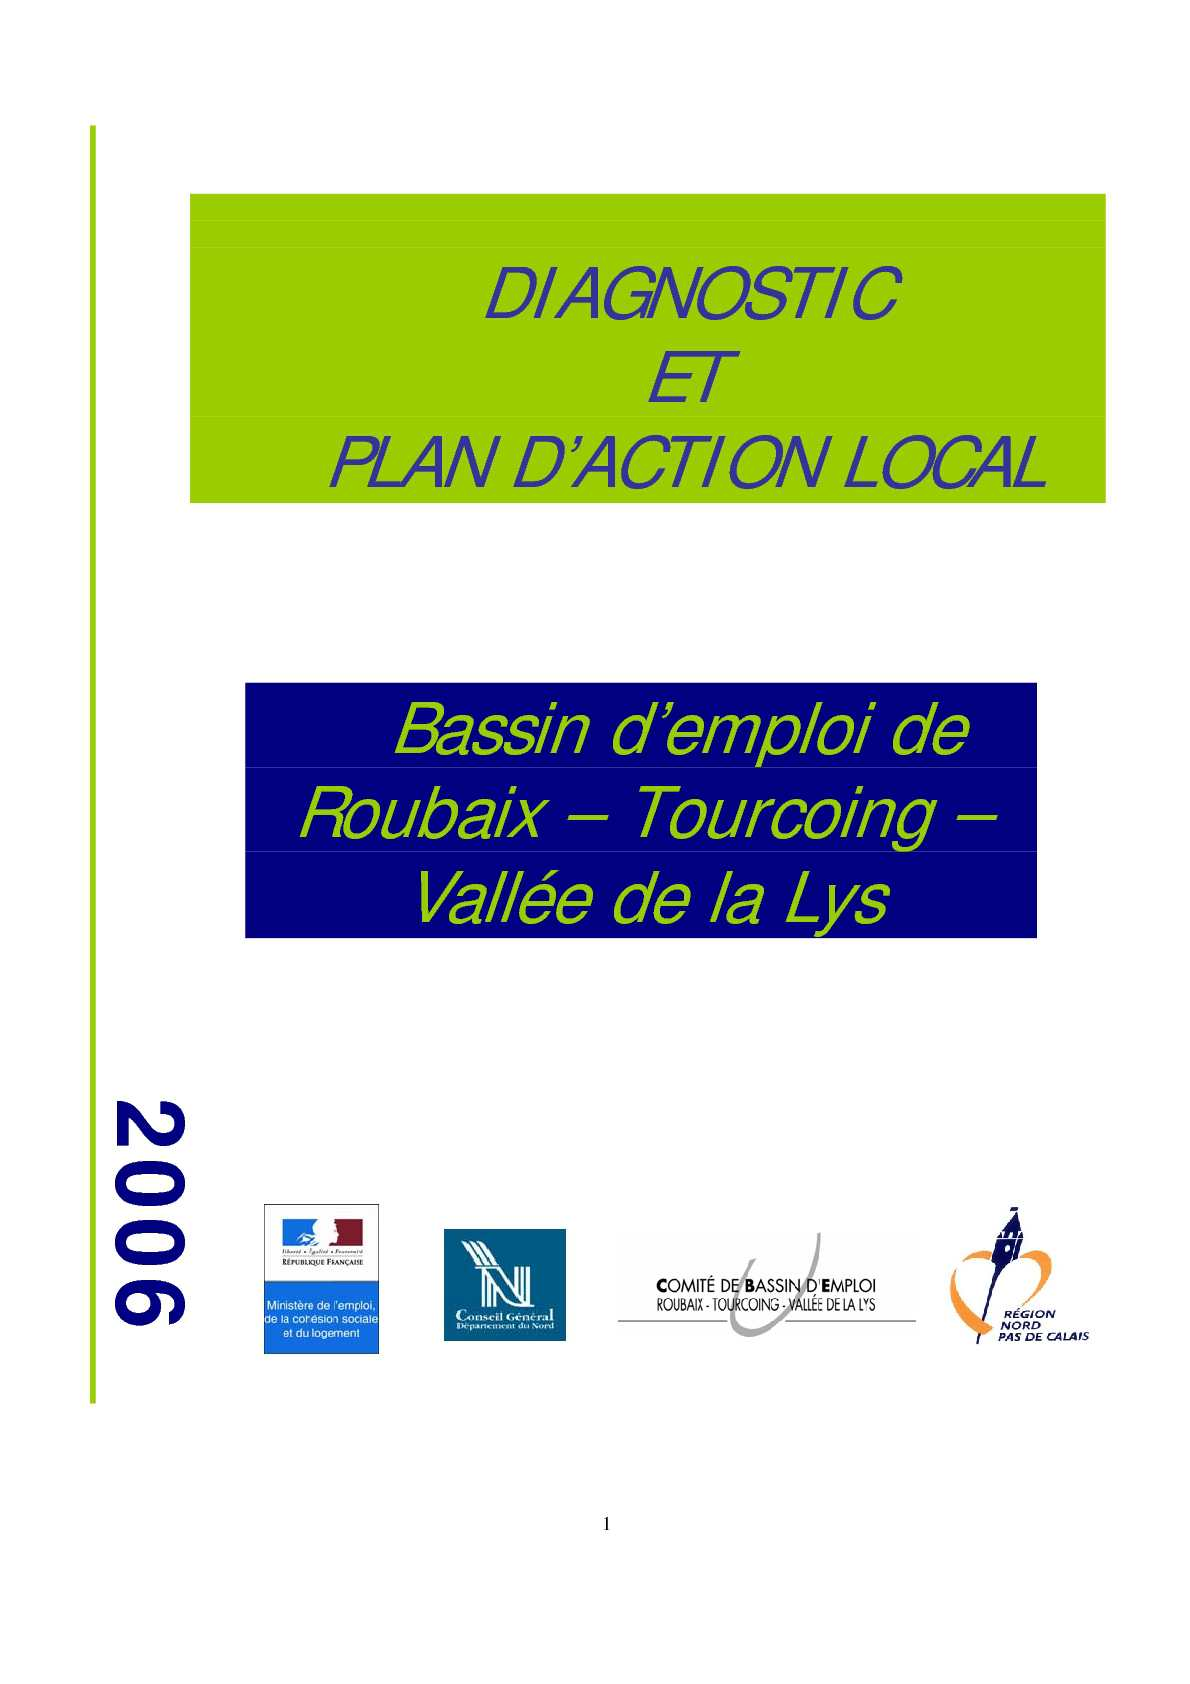 Calam o diagnostic plan d 39 actions local bassin d - Terrassement bassin d arcachon tourcoing ...